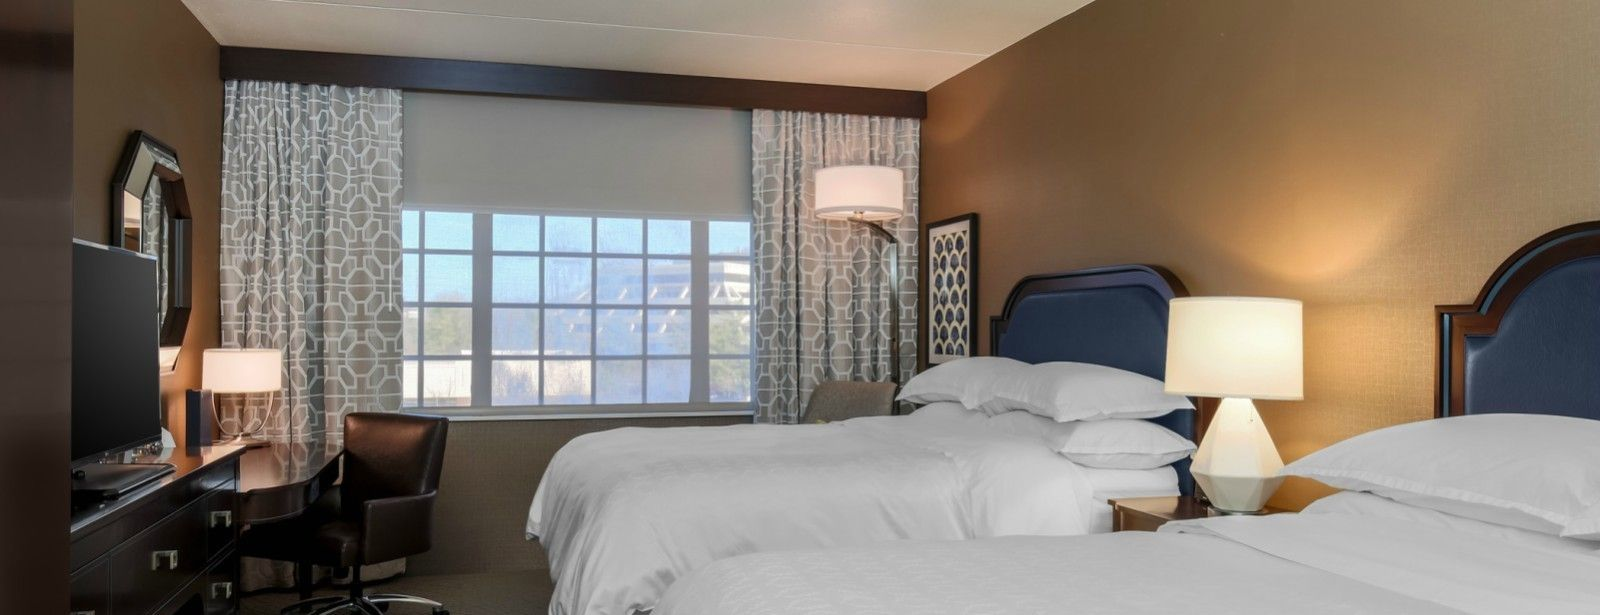 Tarrytown Accommodations - Traditional Double Guest Room